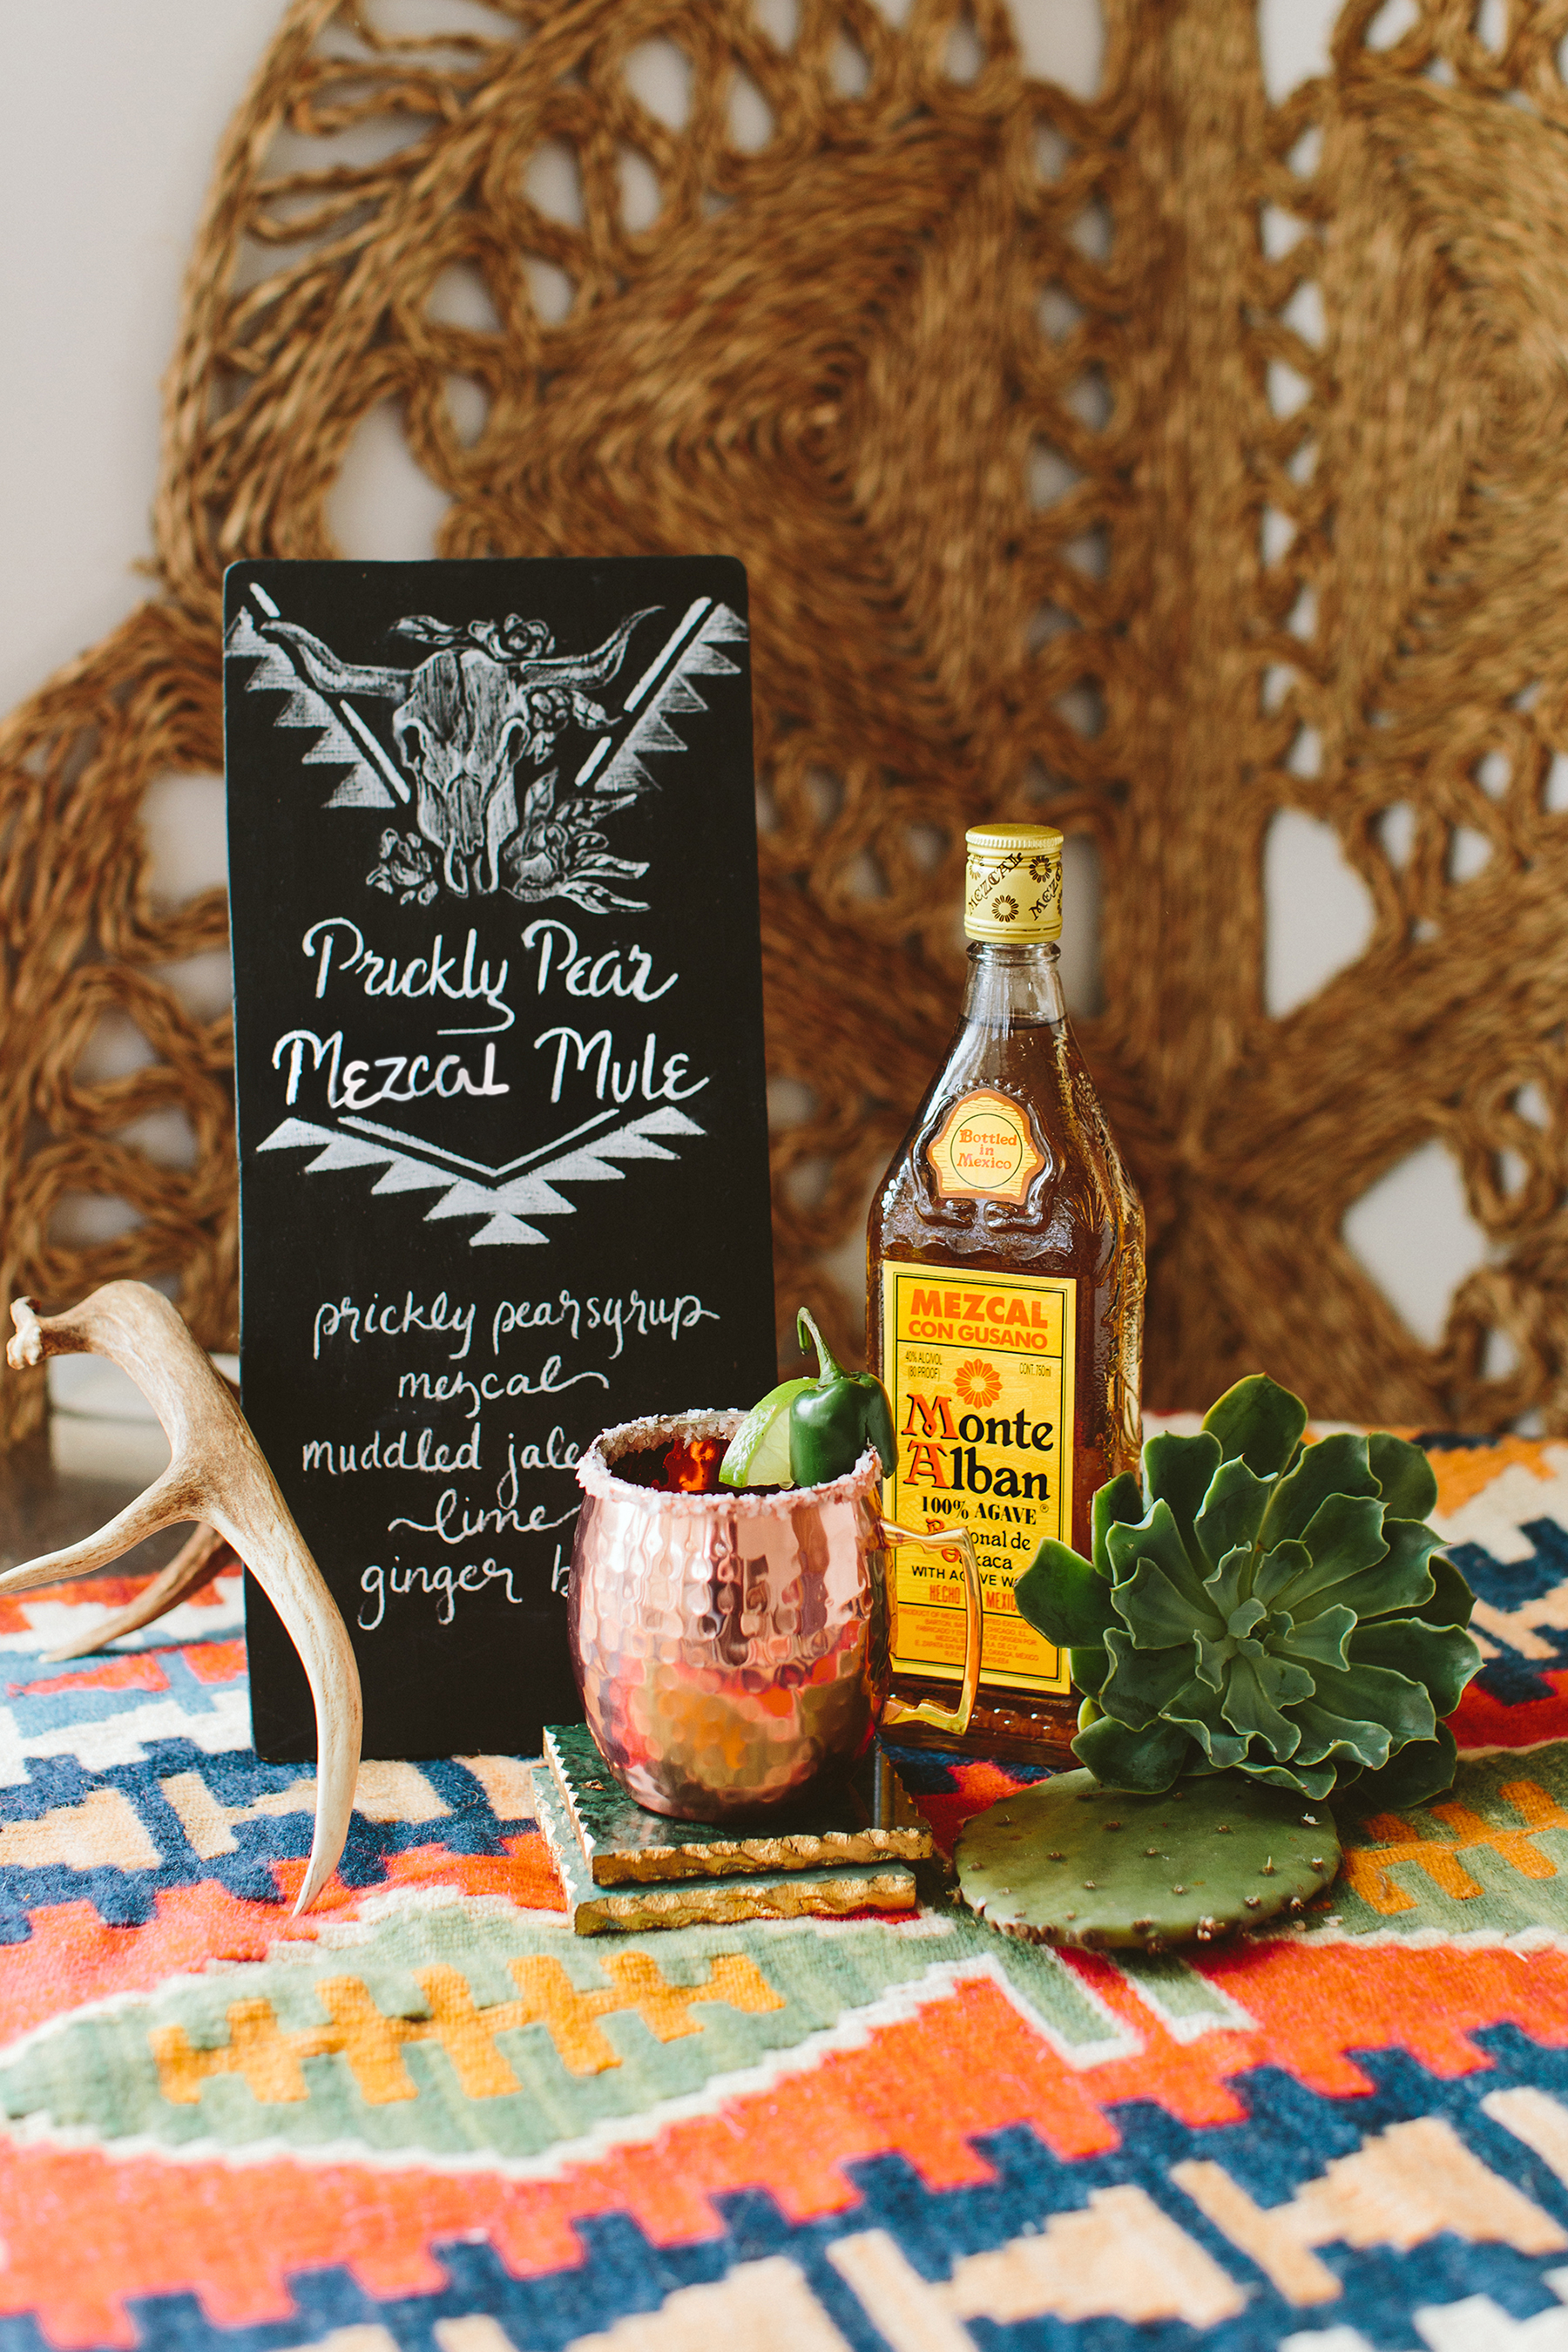 Signature Cocktail Made with Cactus